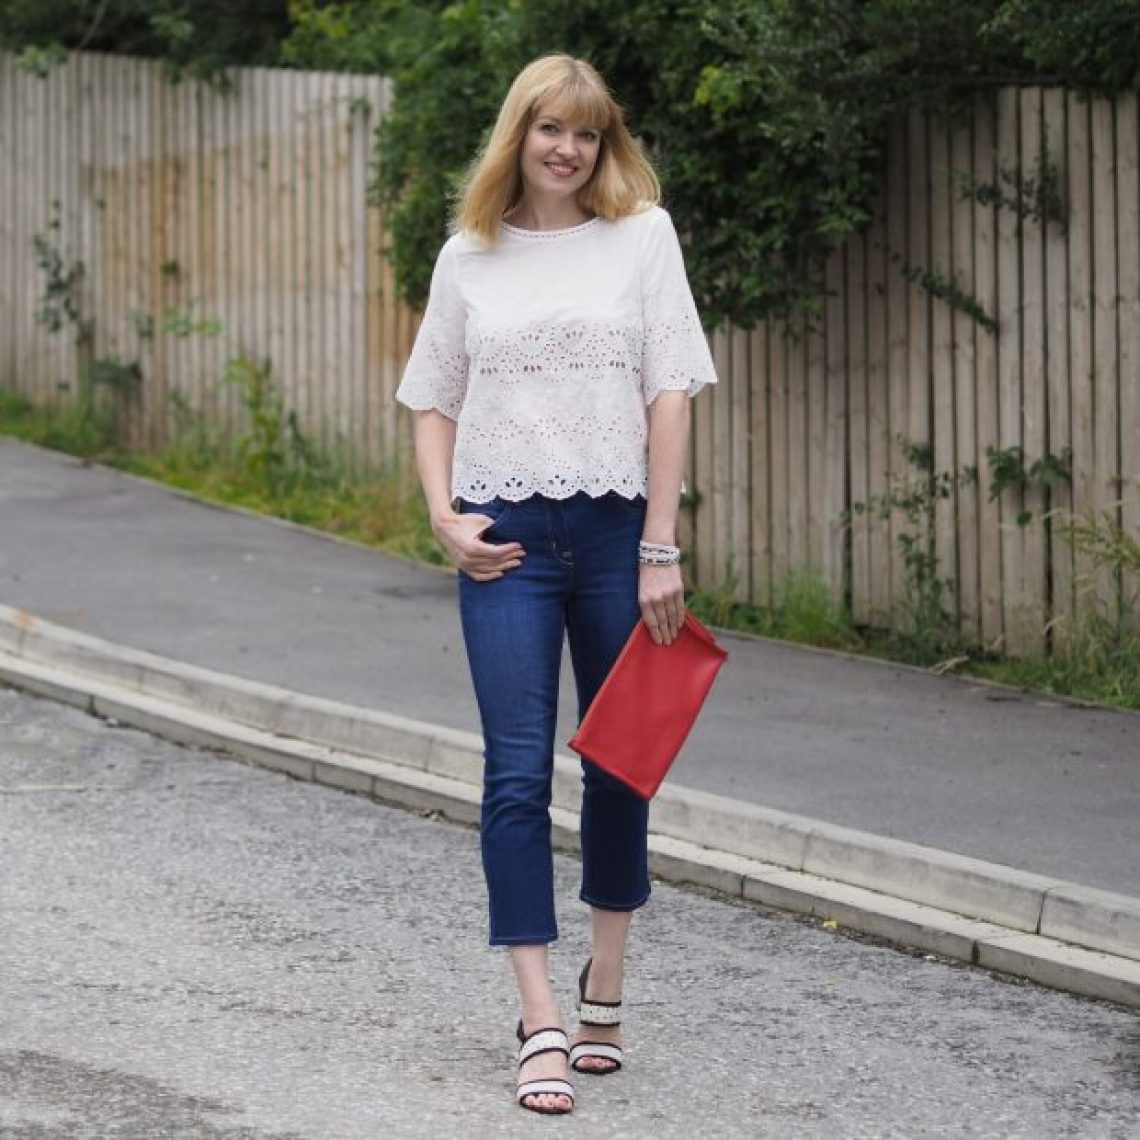 Marks and spencer white top broderie